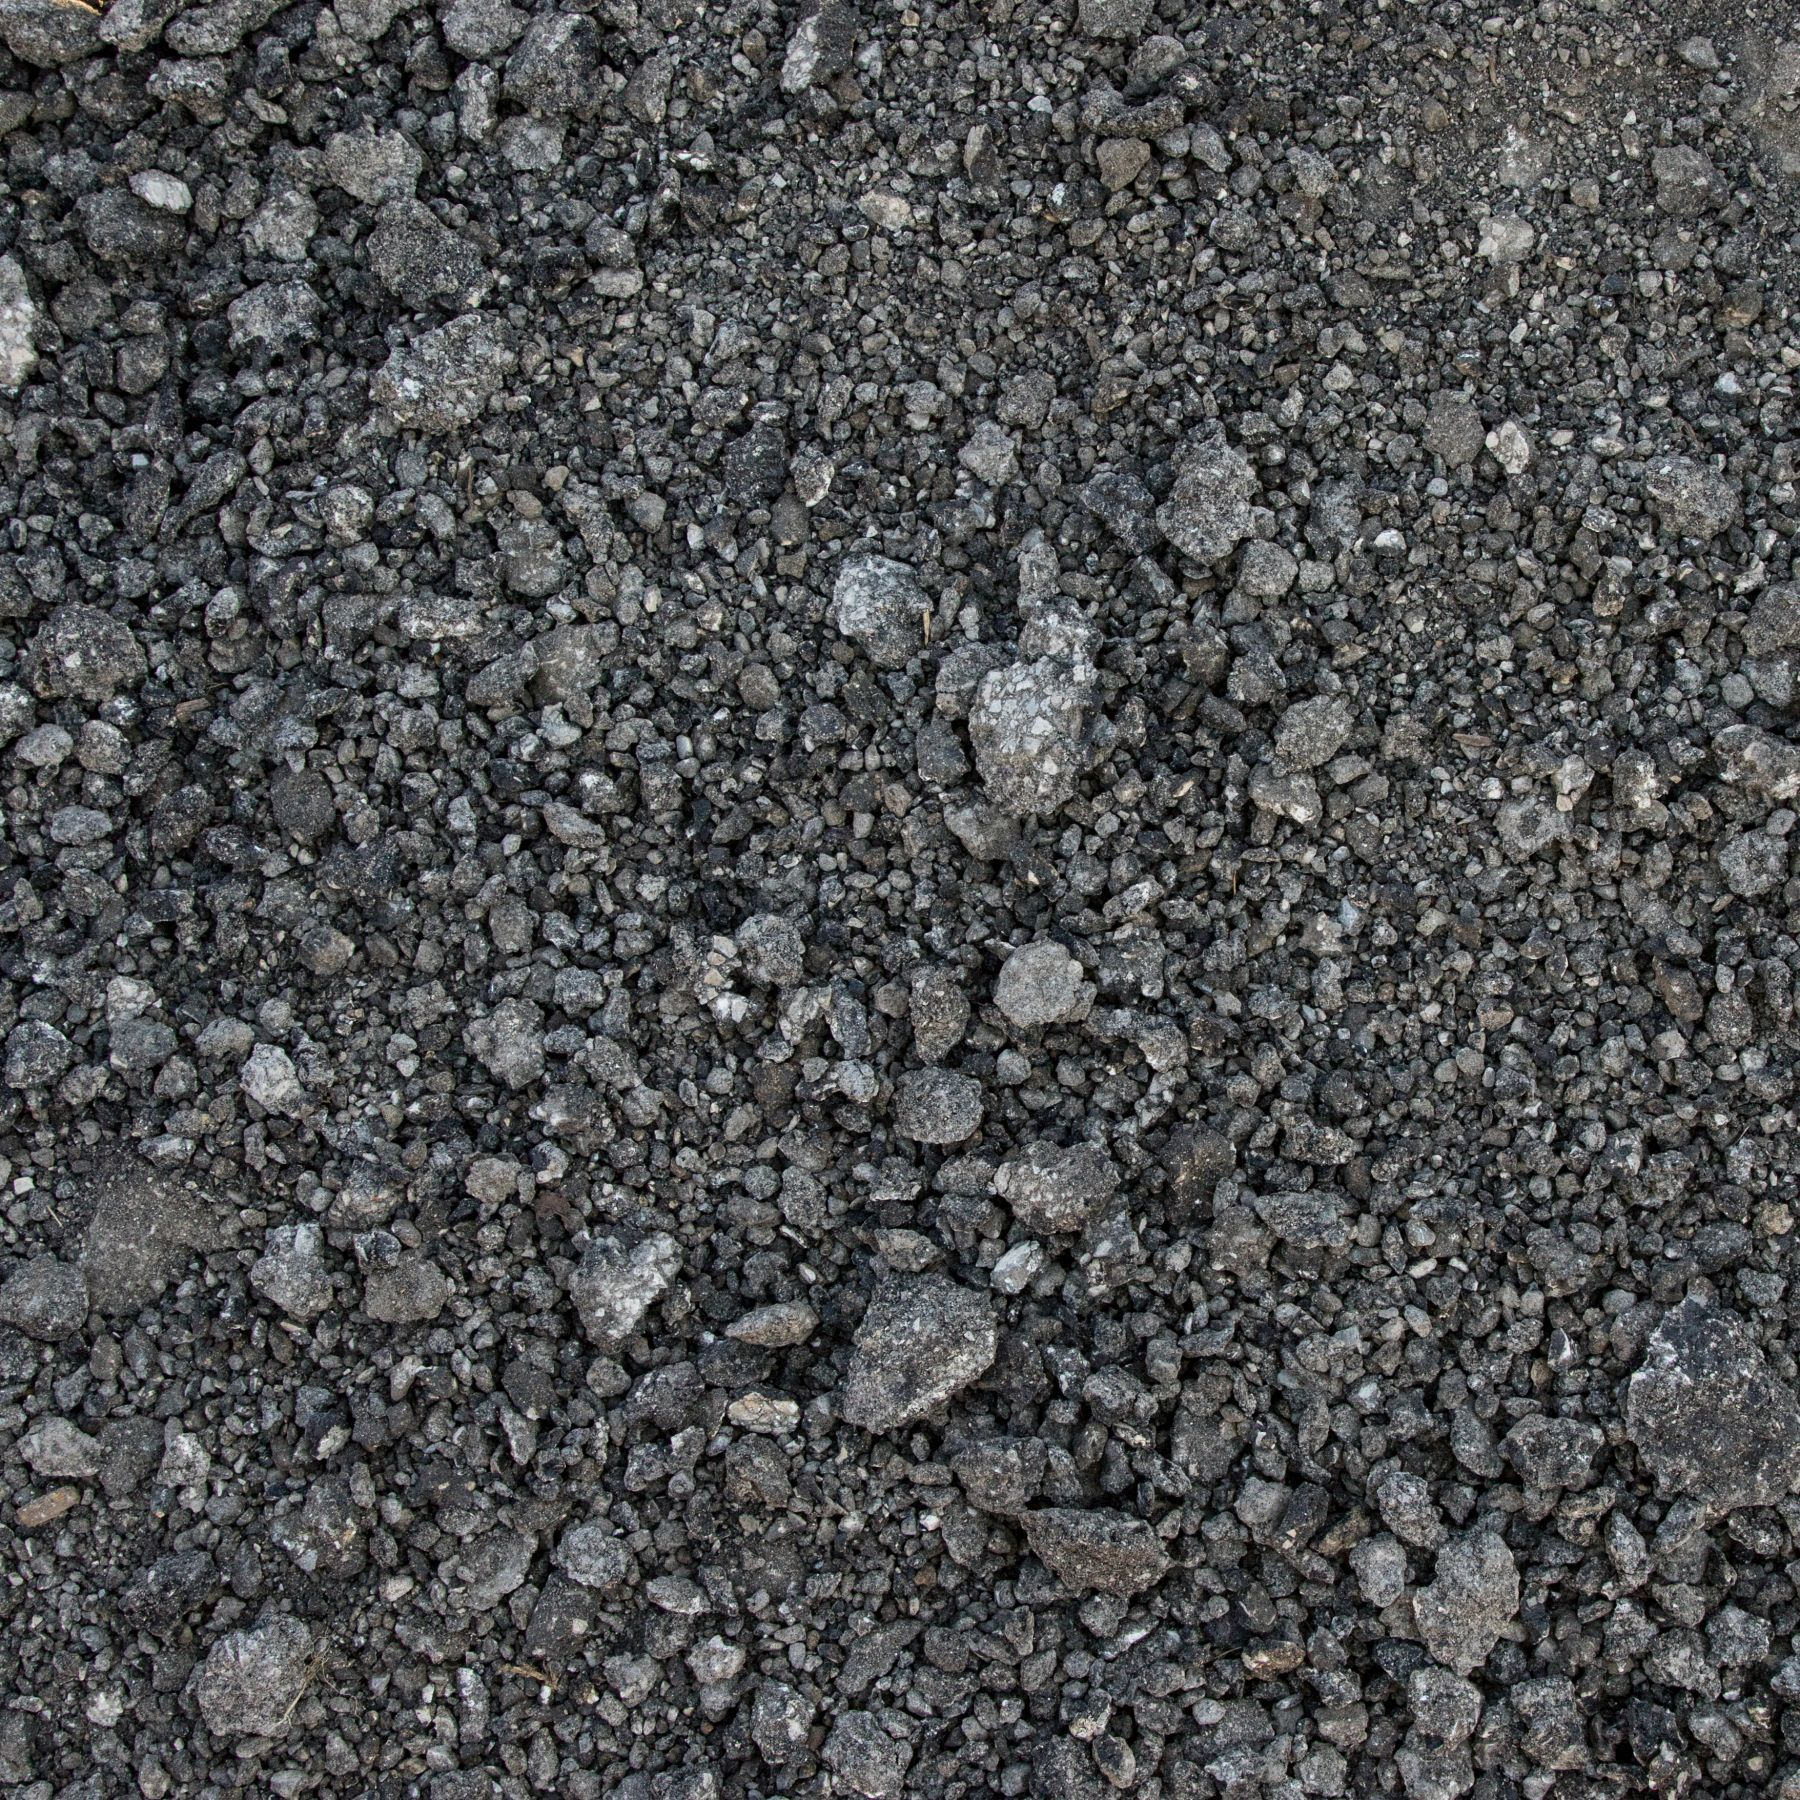 Crushed Asphalt